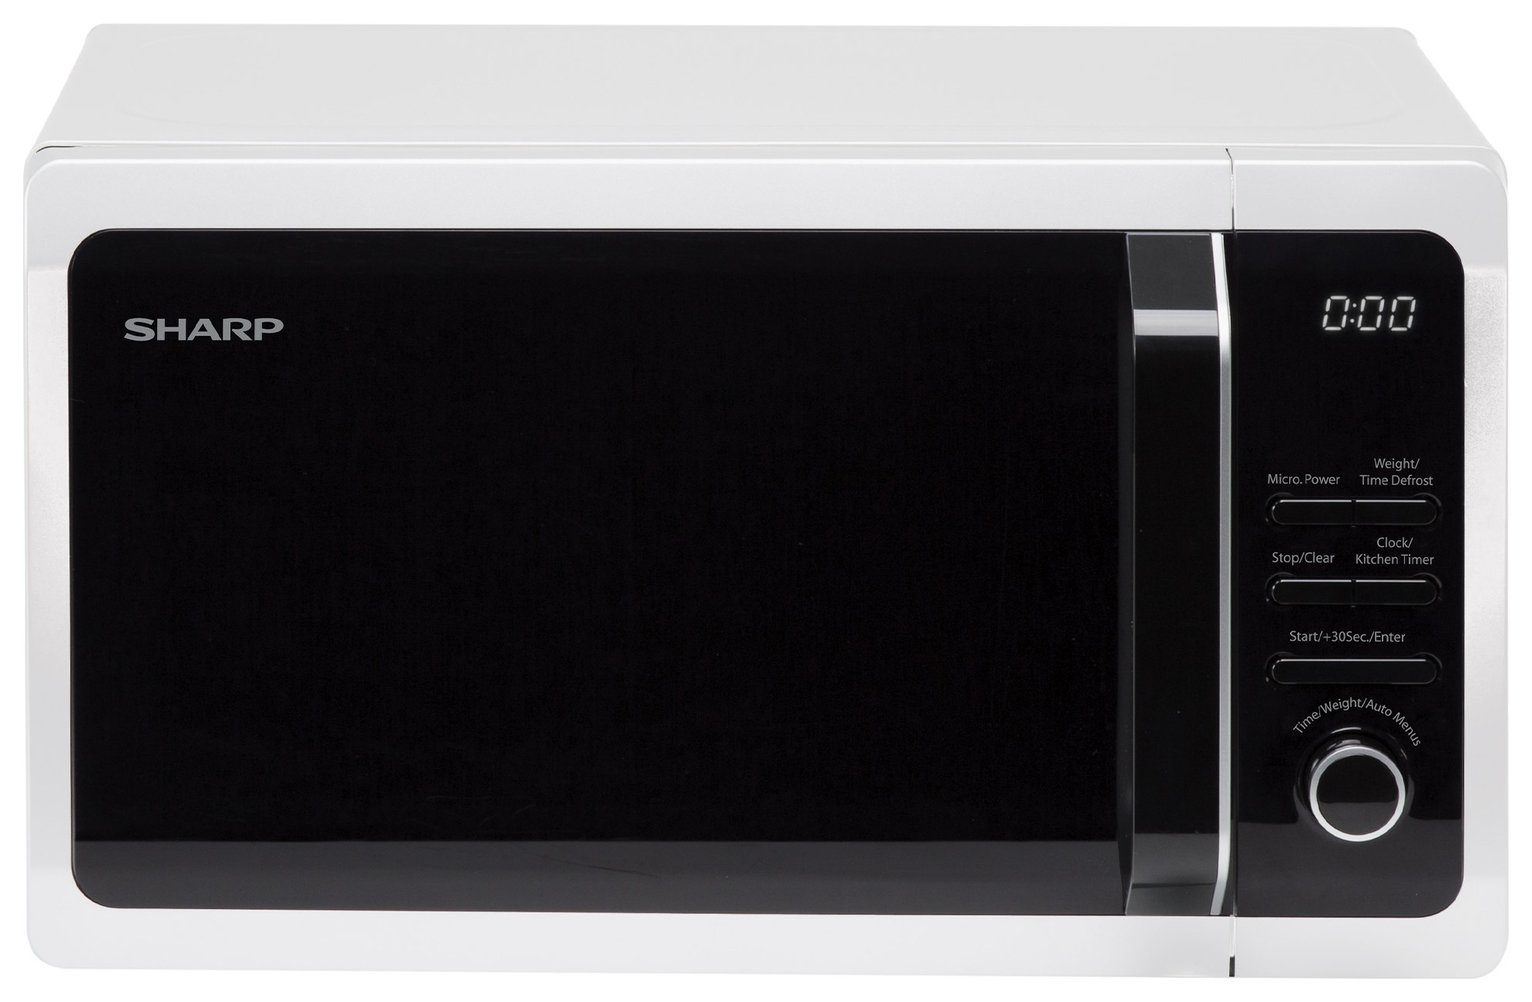 Sharp - R274WM 800W Microwave - White